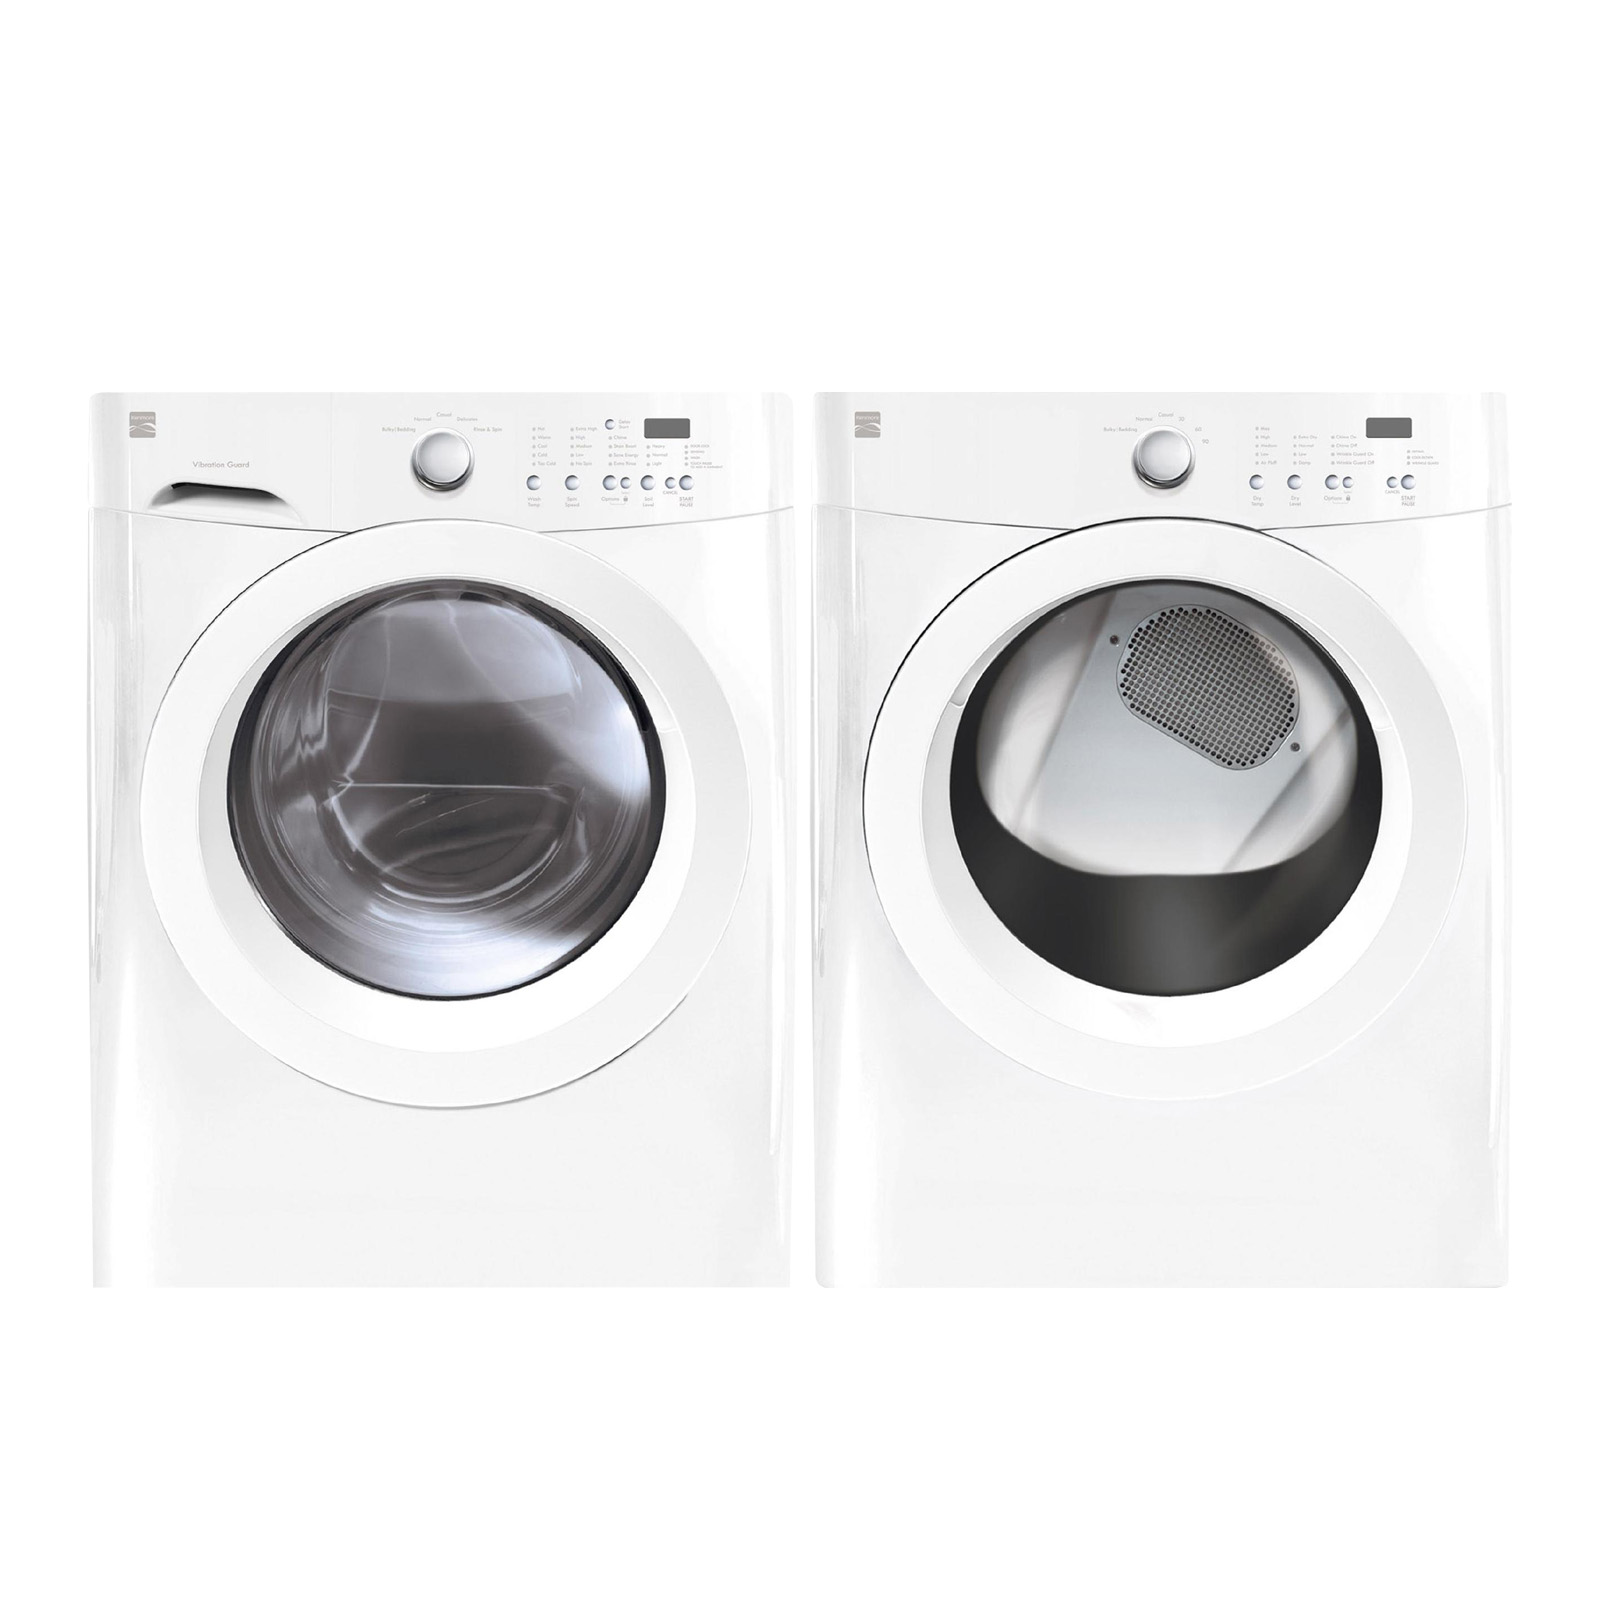 Kenmore 3.7 cu. ft. Front-Load Washer and Kenmore 7.0 cu. ft. Dryer - White Bundle